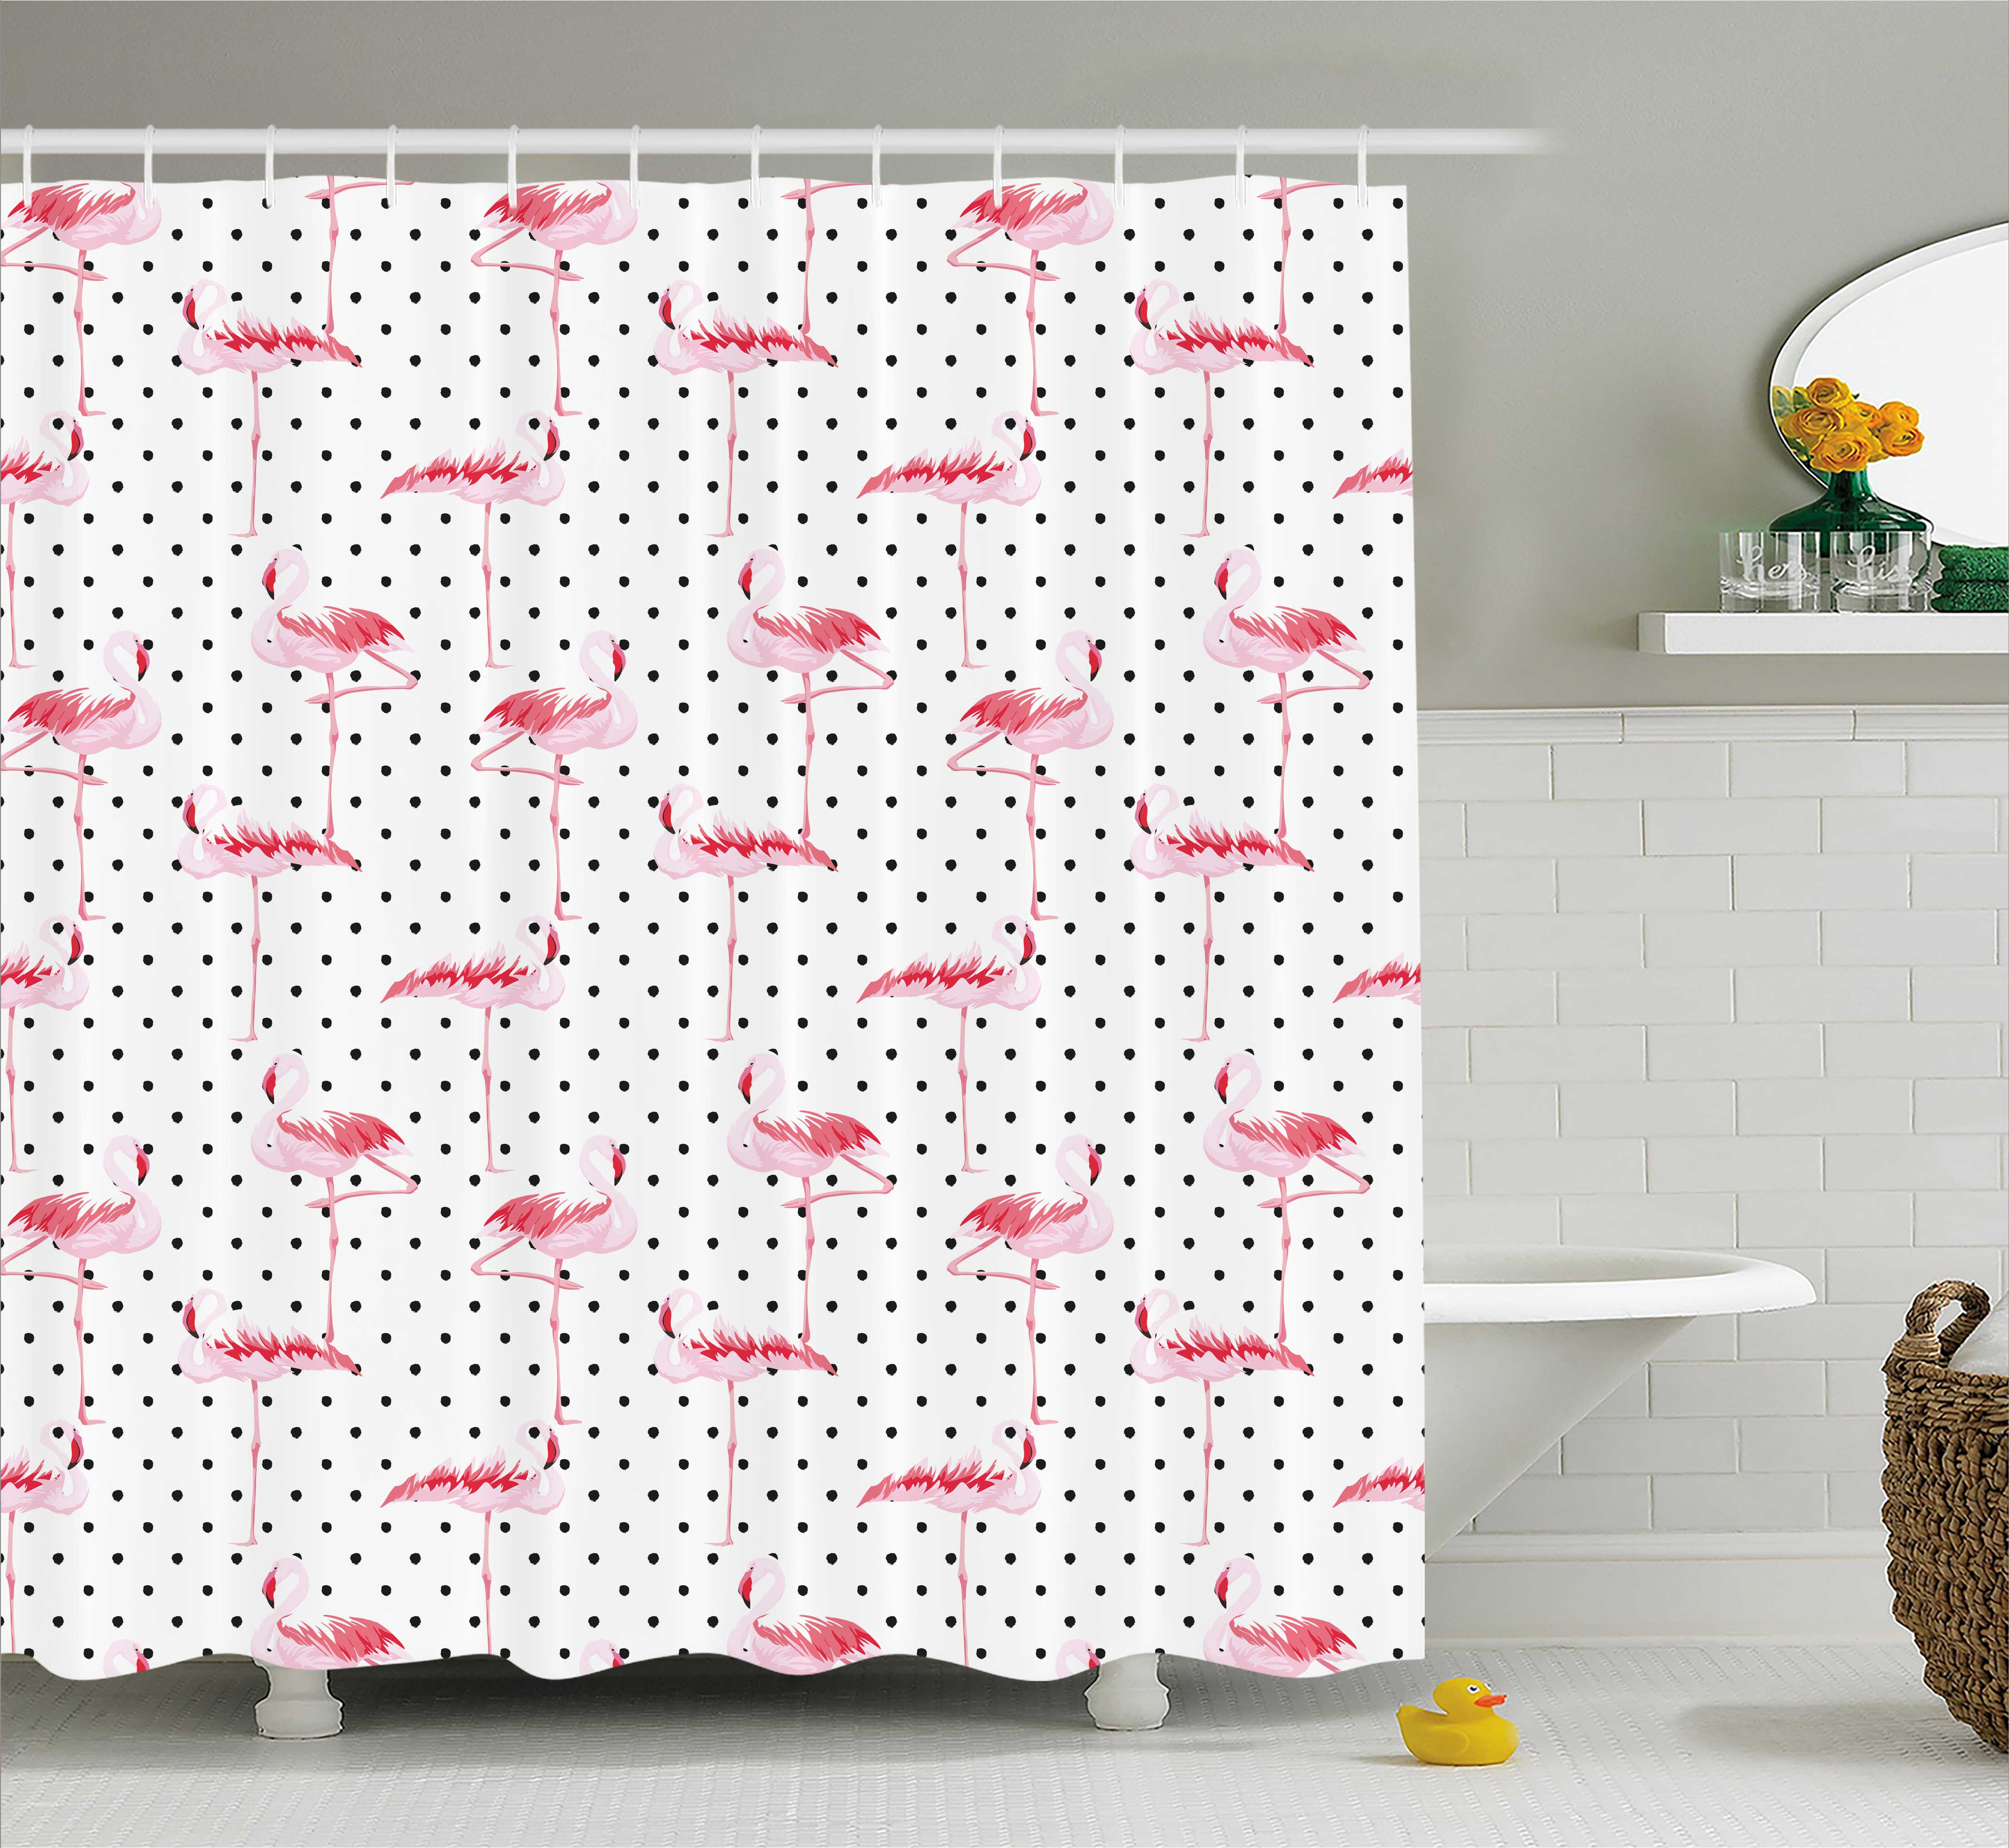 Retro Shower Curtain, Flamingo Birds on Minimalist Stylized Polka Dots Background Lovely Illustration, Fabric Bathroom Set with Hooks, 69W X 75L Inches Long, Pale Pink White, by Ambesonne